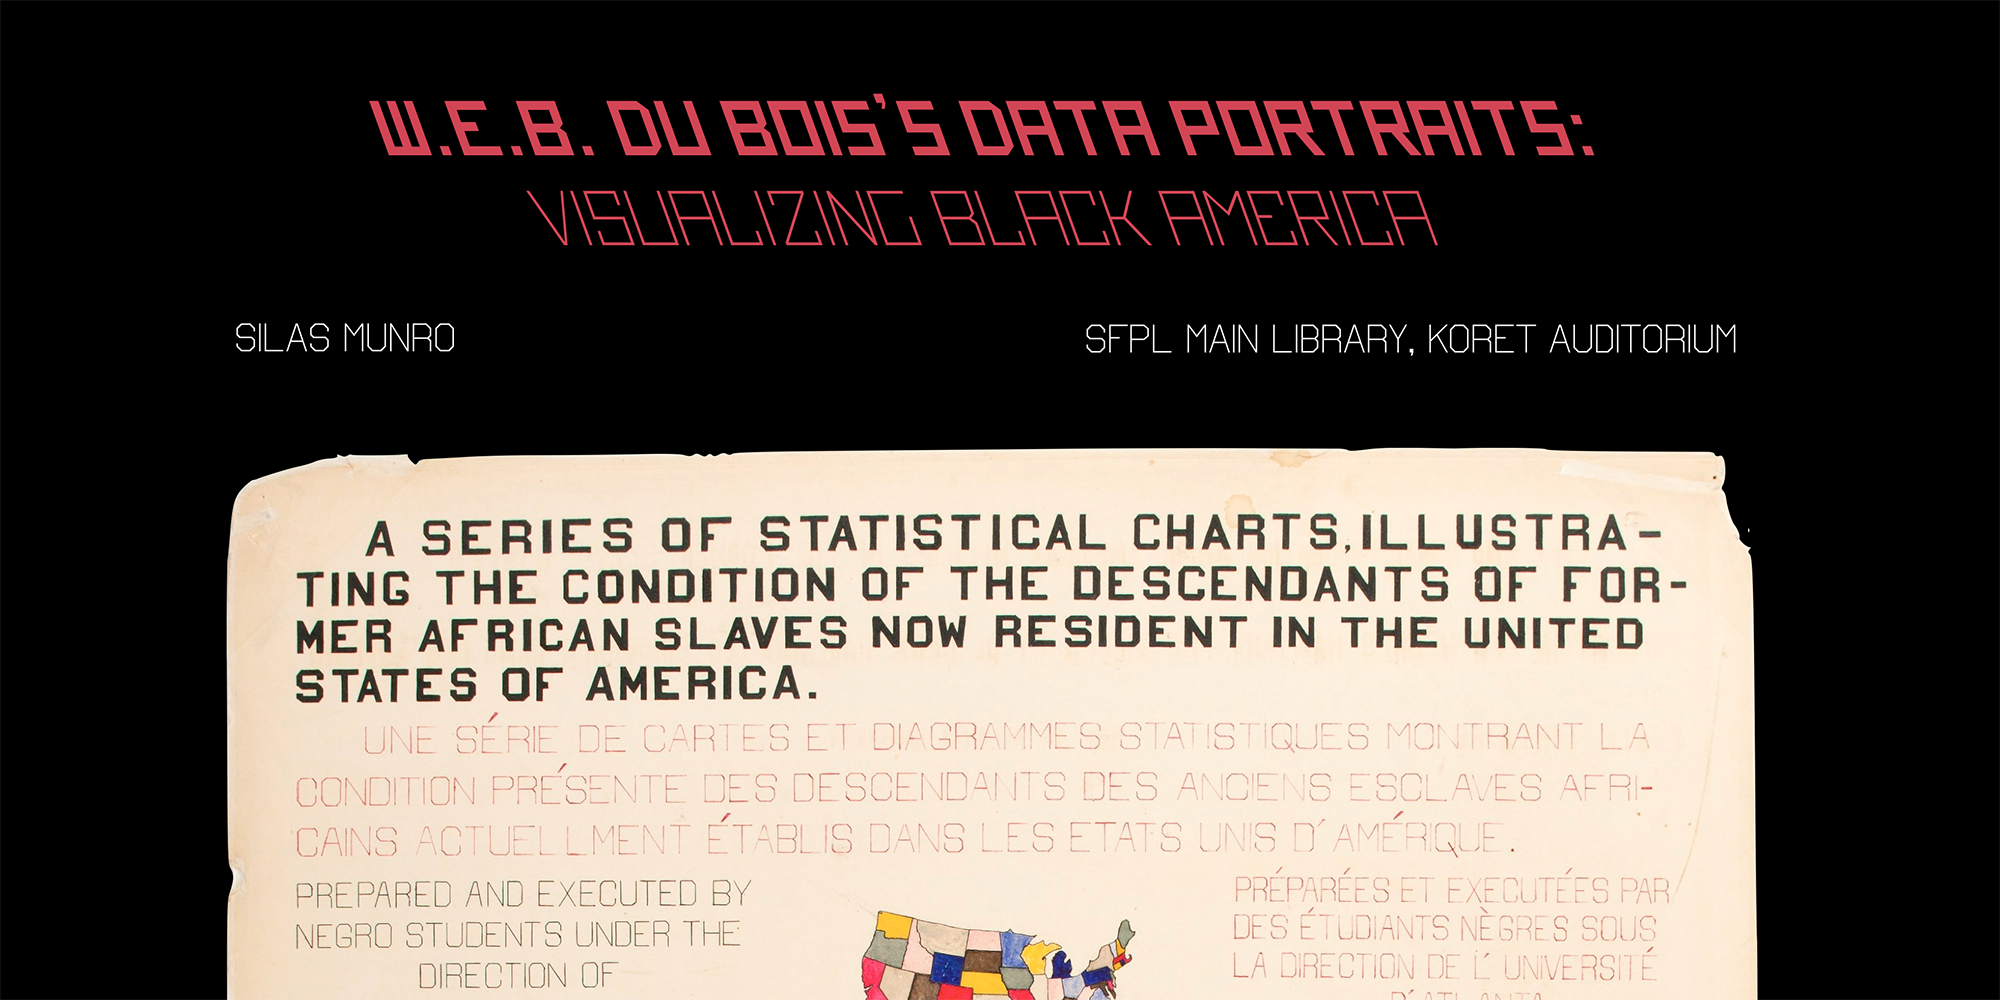 W.E.B. Du Bois's Data Portraits: Visualizing Black America